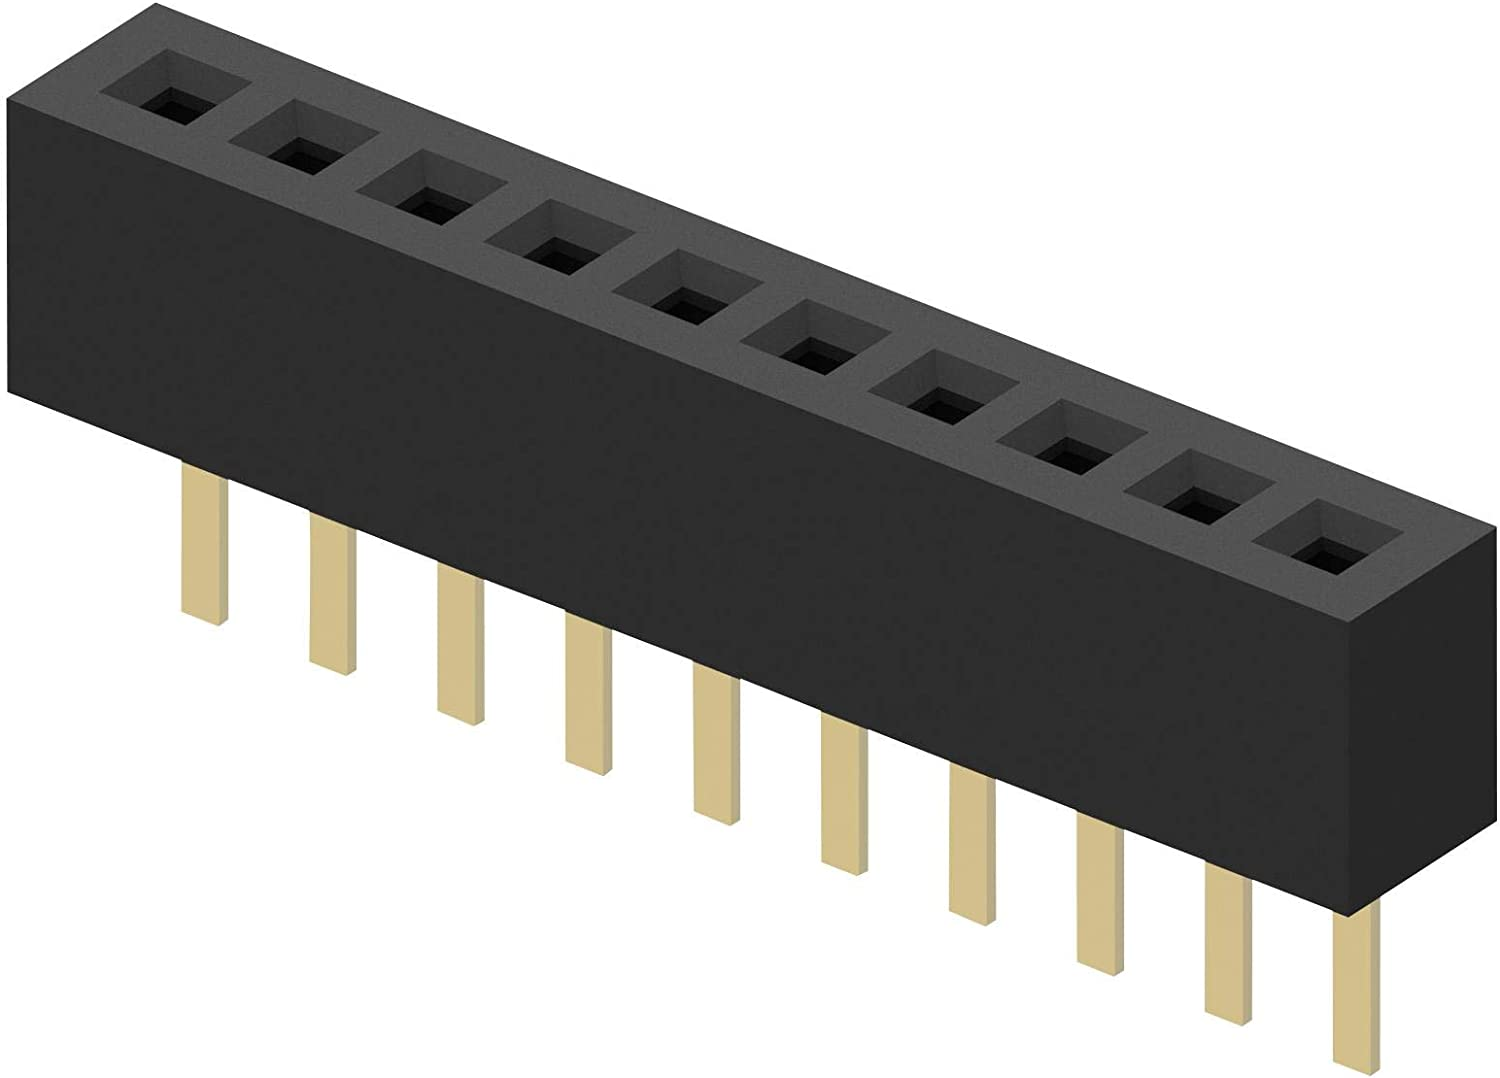 Receptacle 1 Rows 8 Contacts Board-To-Board Connector 1 mm BC065-08-A-L-D Through Hole BC065-08-A-L-D Pack of 50 BC065 Series